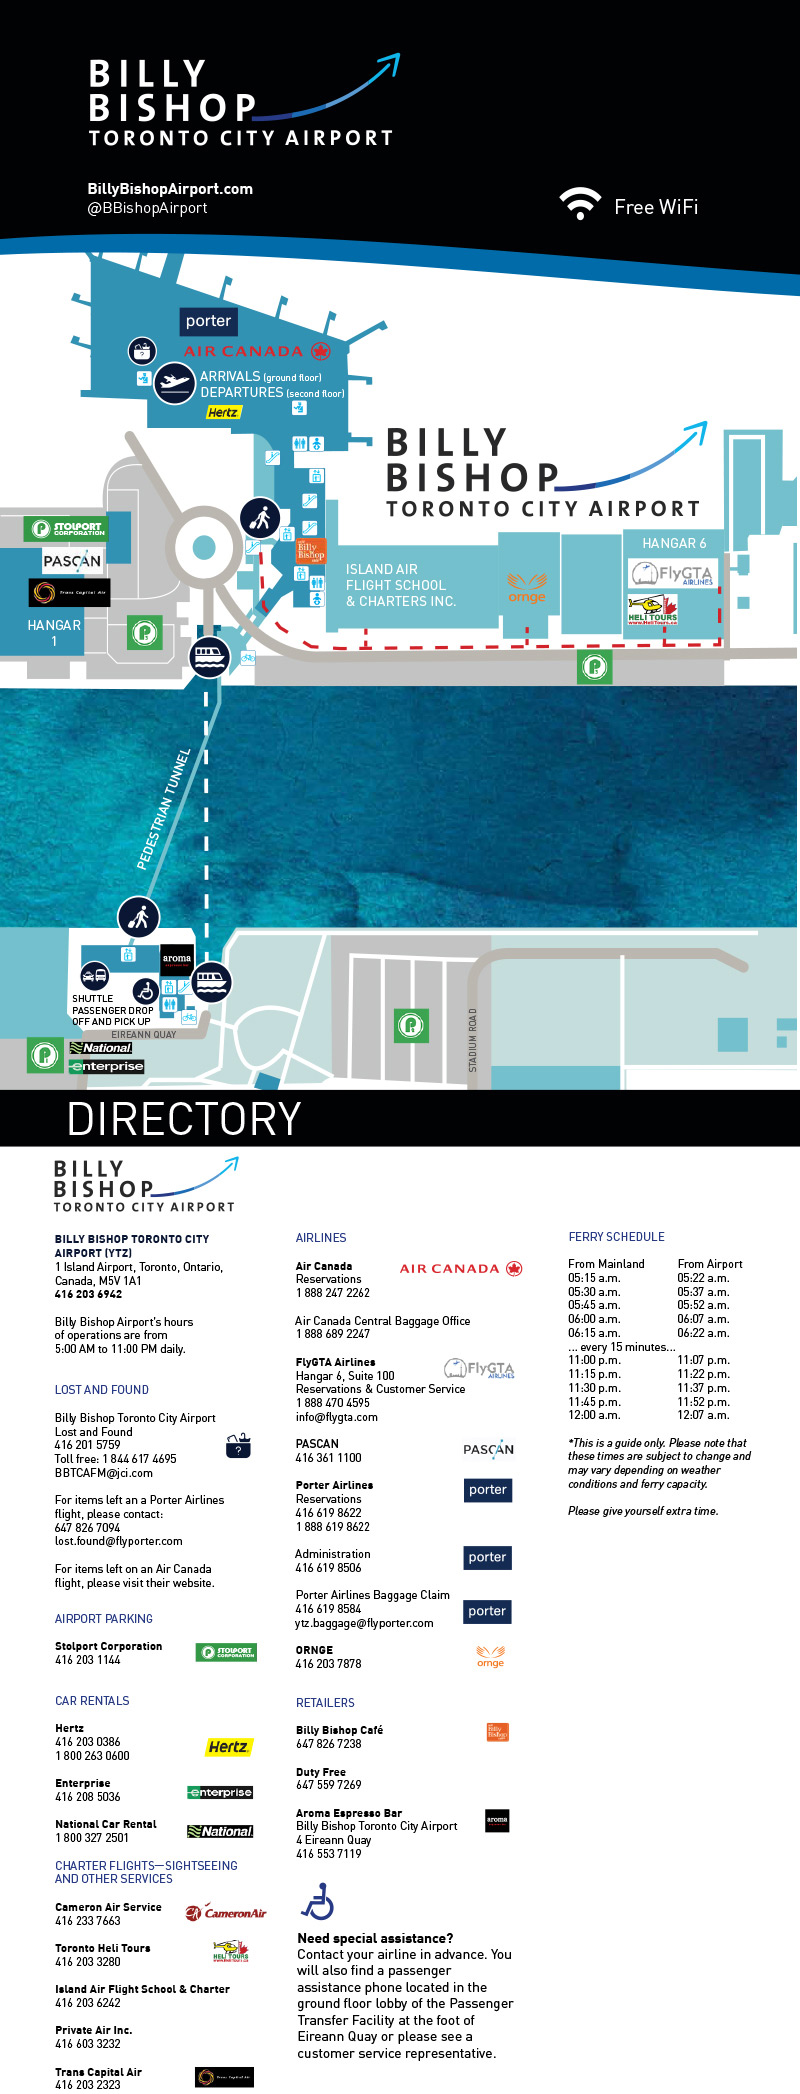 Billy-Bishop-Airport-Directory-E.jpg